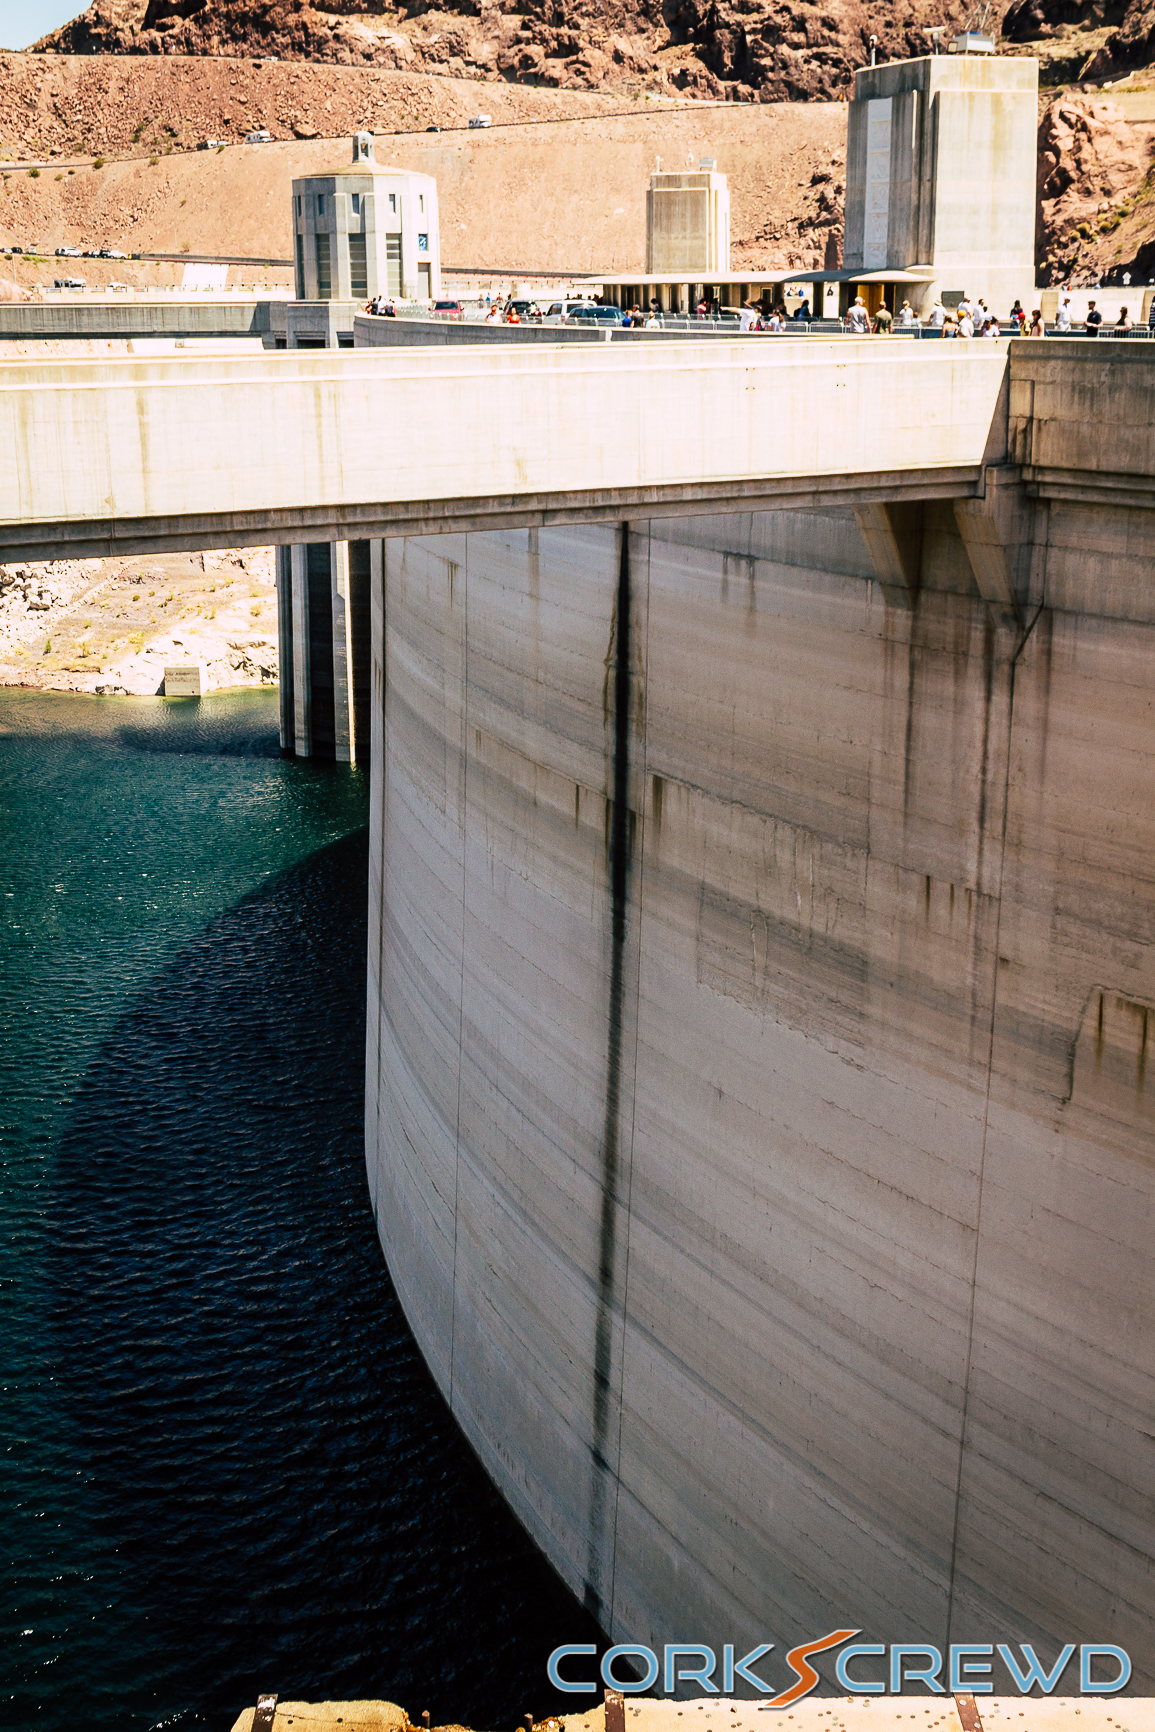 A view of the front of the Hoover Dam.